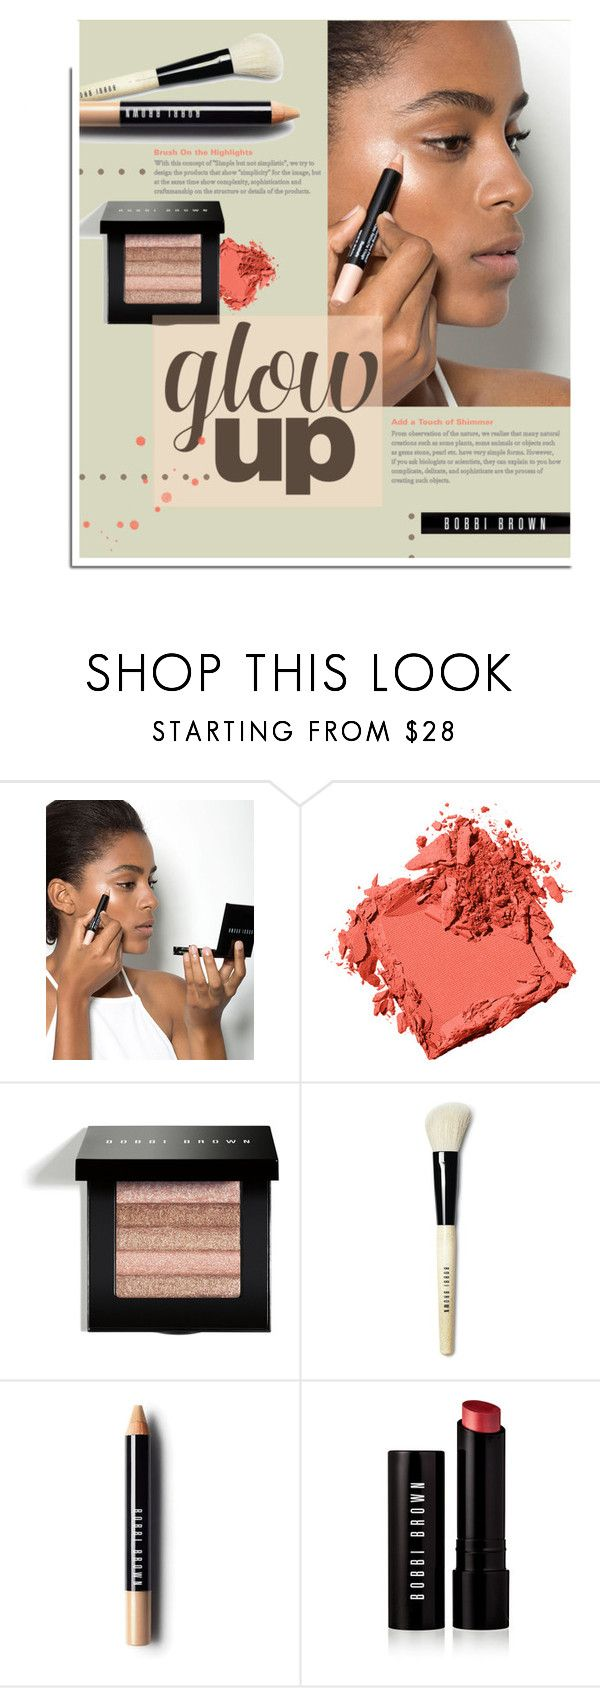 """""""Makeup Lesson."""" by s-elle ❤ liked on Polyvore featuring beauty, Bobbi Brown Cosmetics and glowup"""